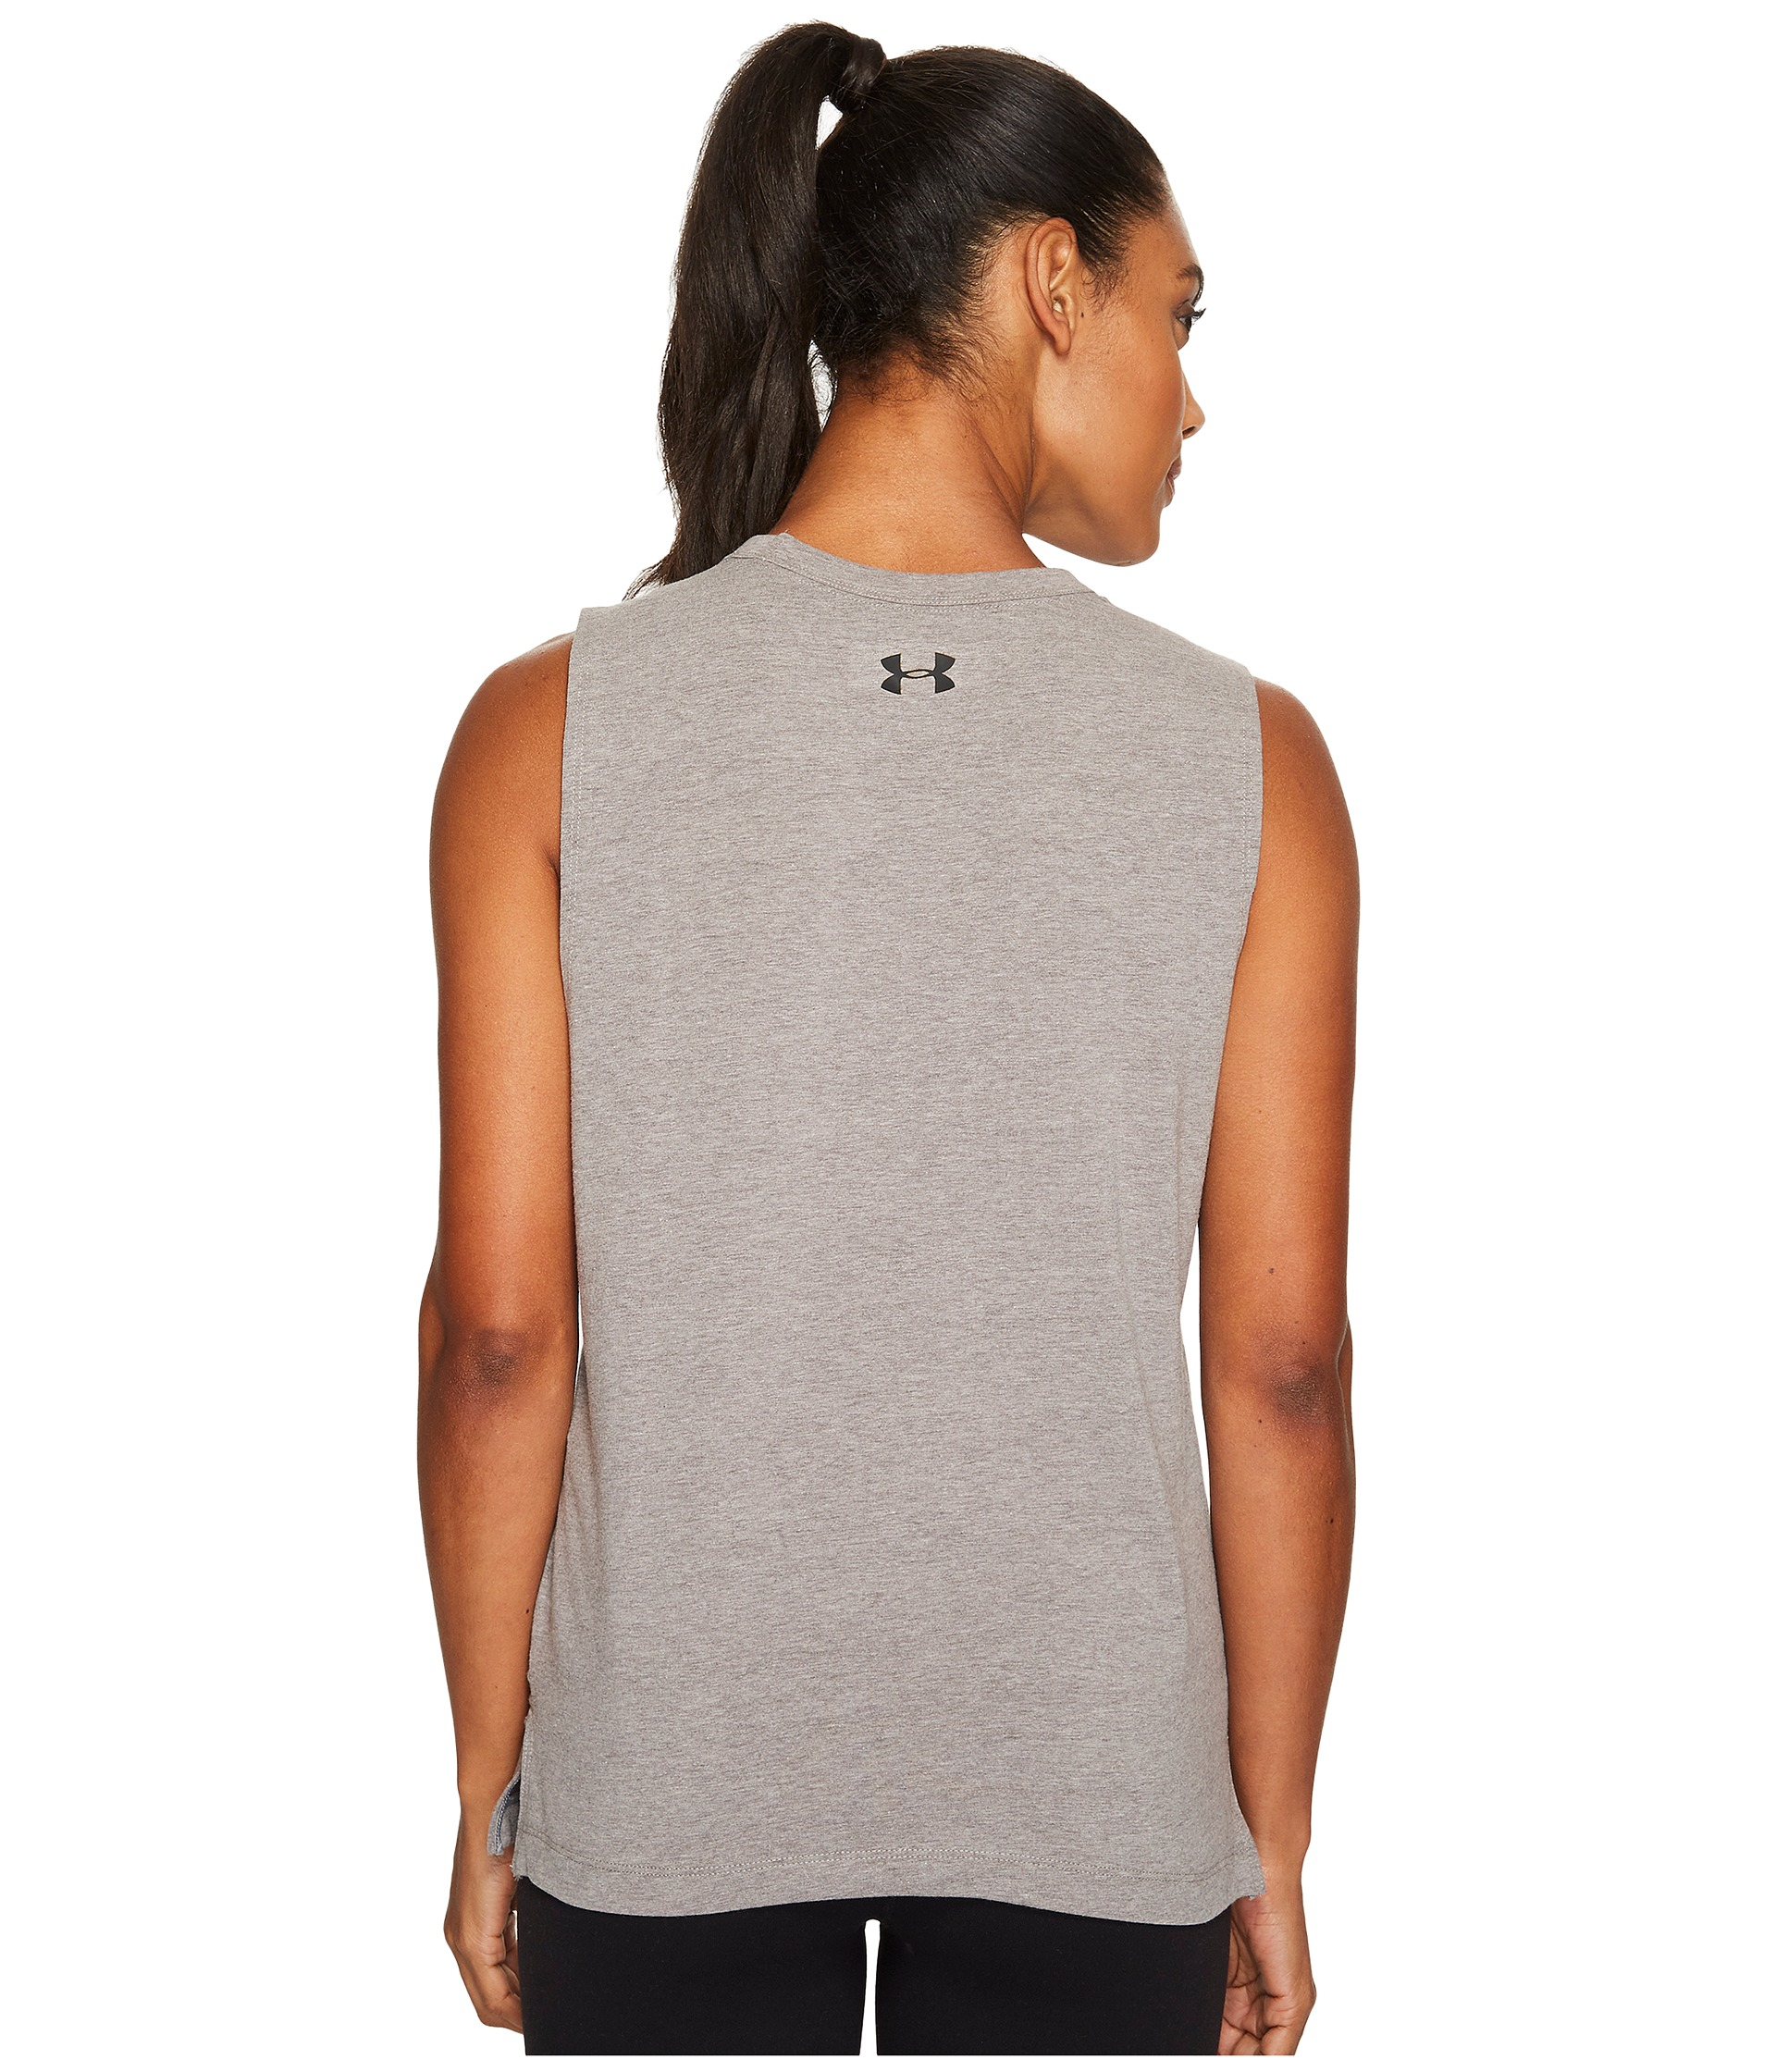 7aa5f6c2582108 Under armour muscle tank top jpg 1920x2240 Under armour muscle tank